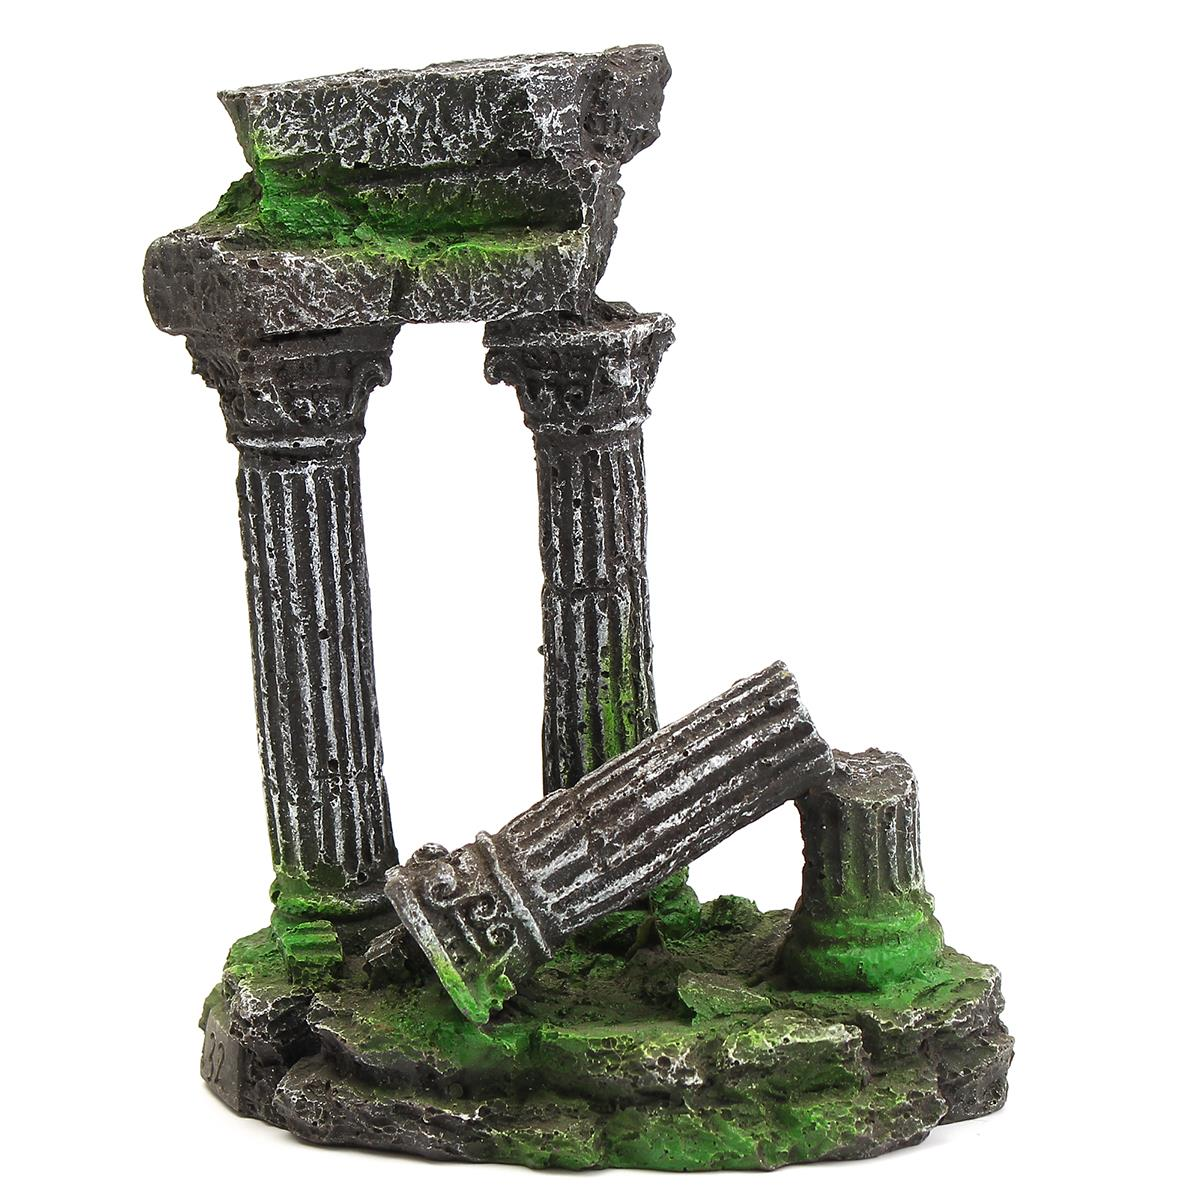 Decorative garden ornaments - Castle Artificial Roman Ruins Garden Ornaments Ancient Roman Decorations Column Ornament Rockery Resin Hiding Landscaping